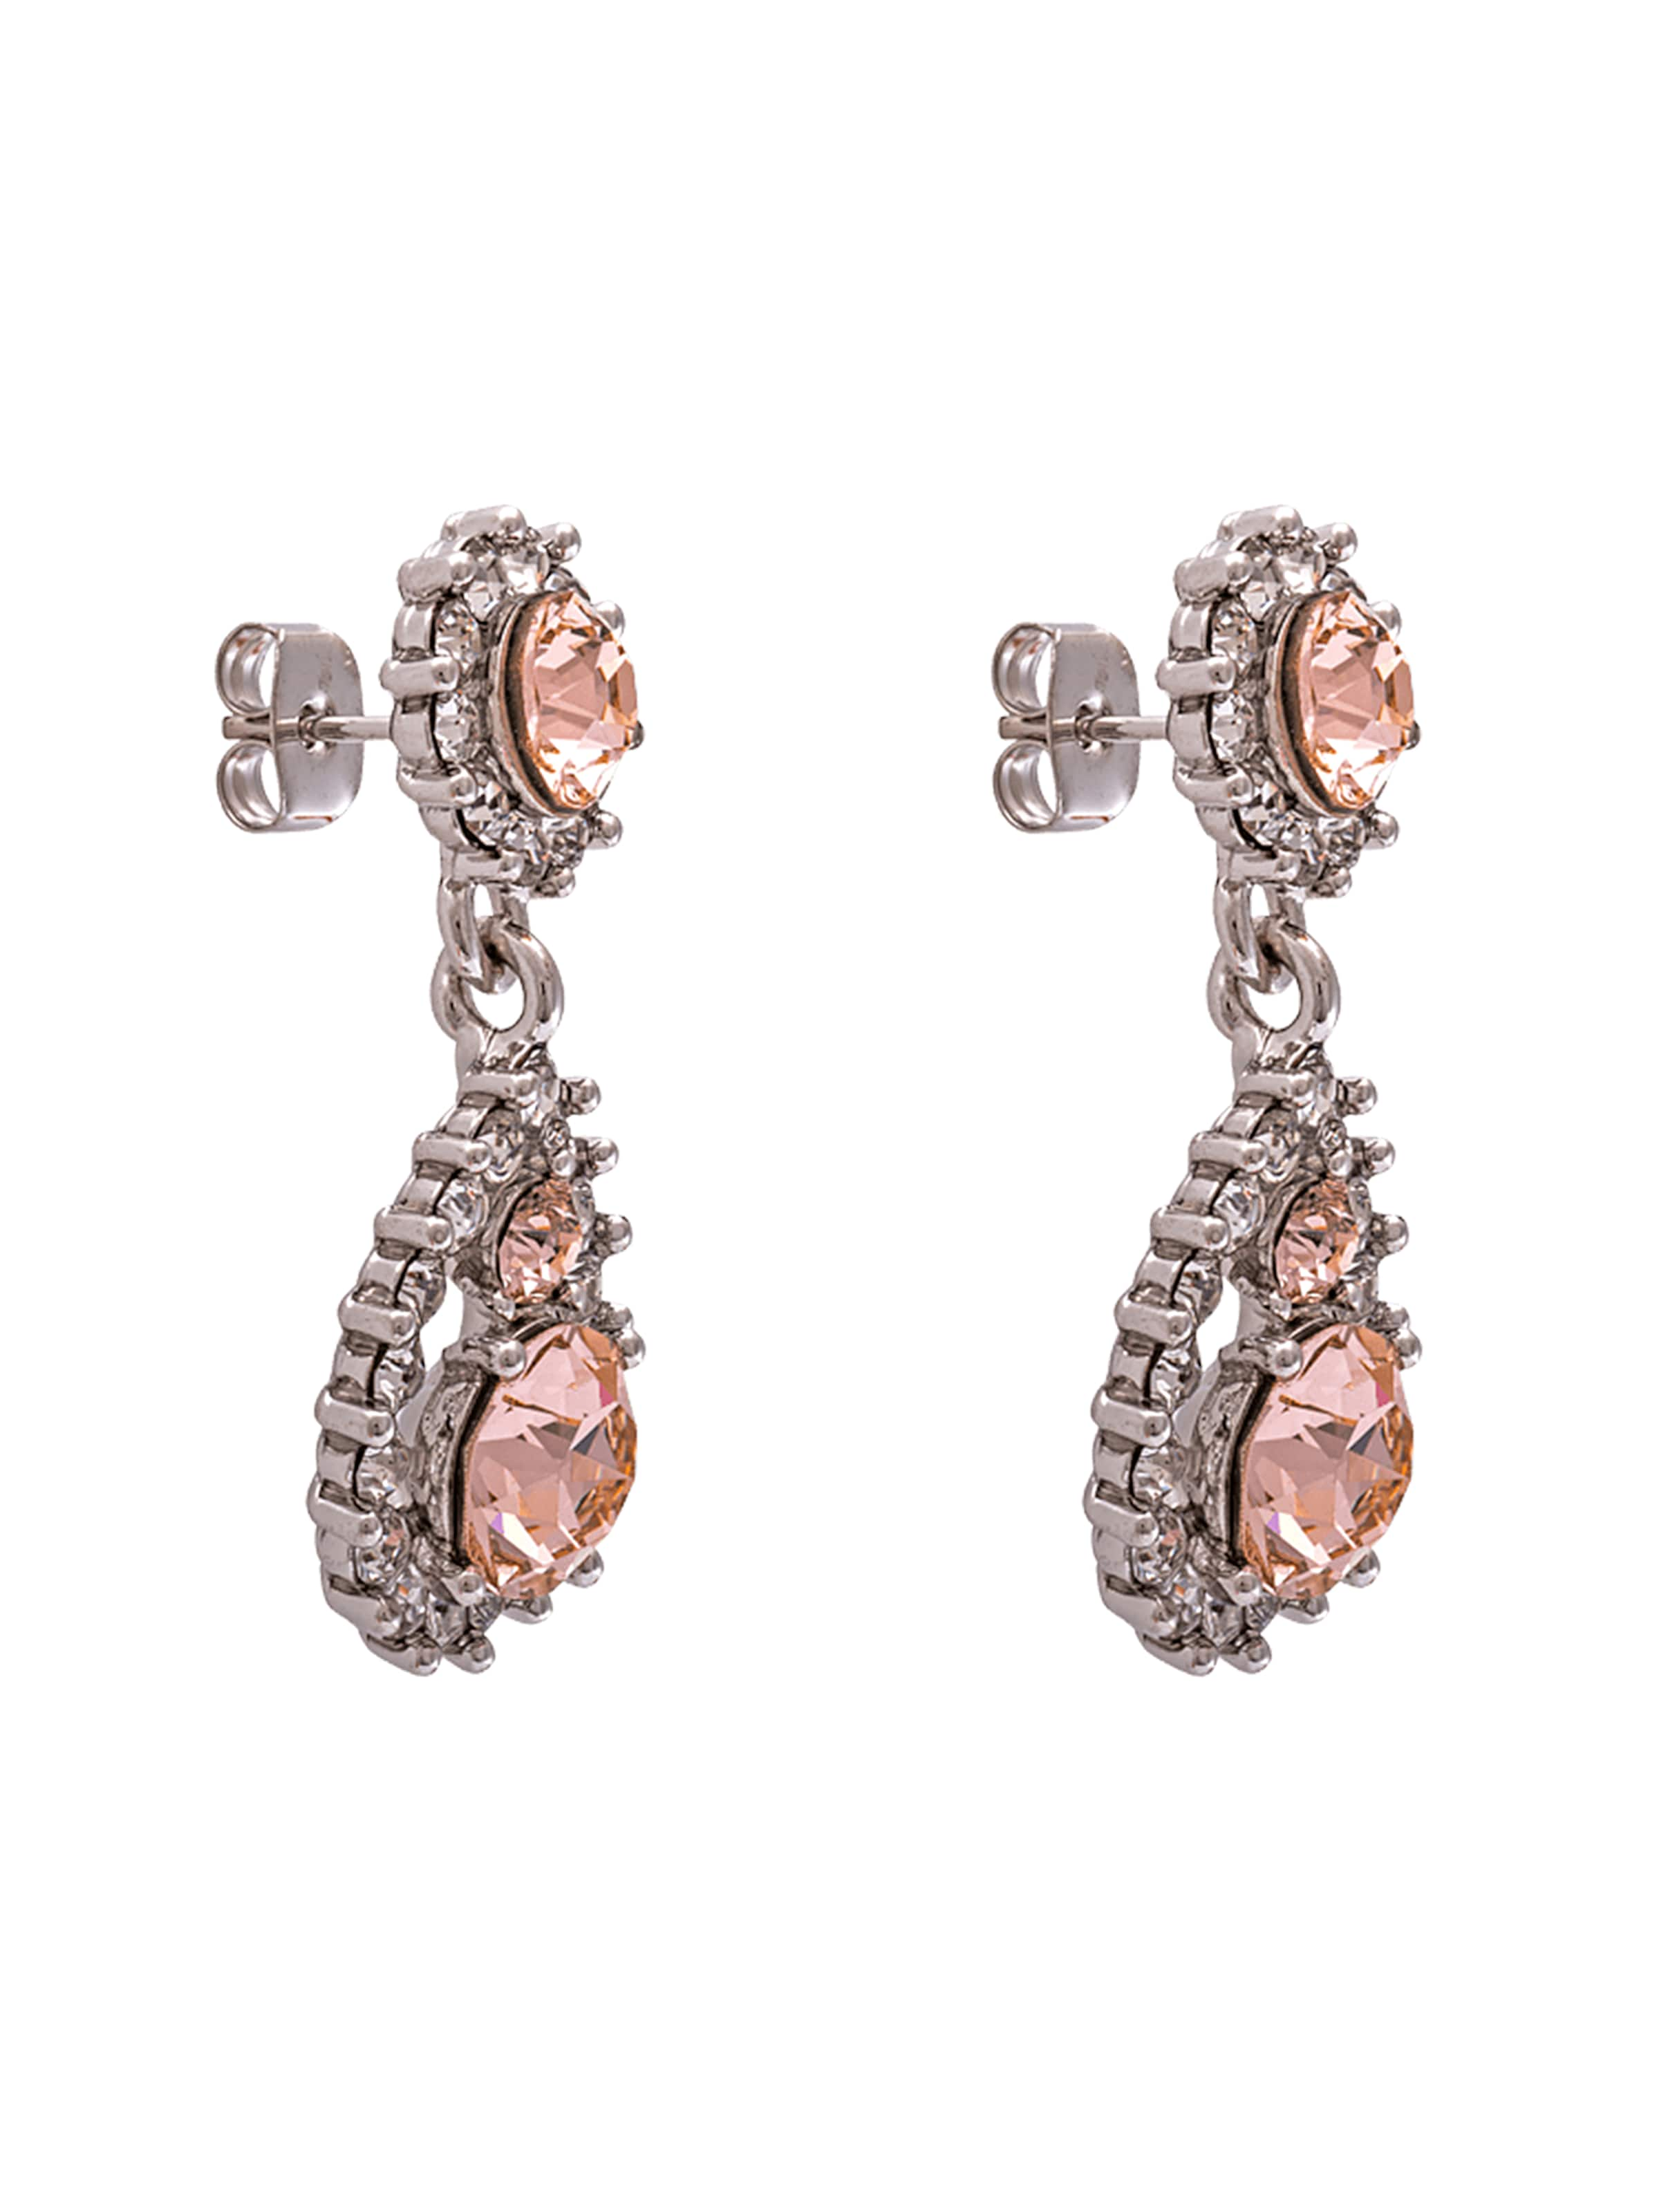 EnArgent Lily Rose 'sofia' And Boucles D'oreilles 9WDEH2IY